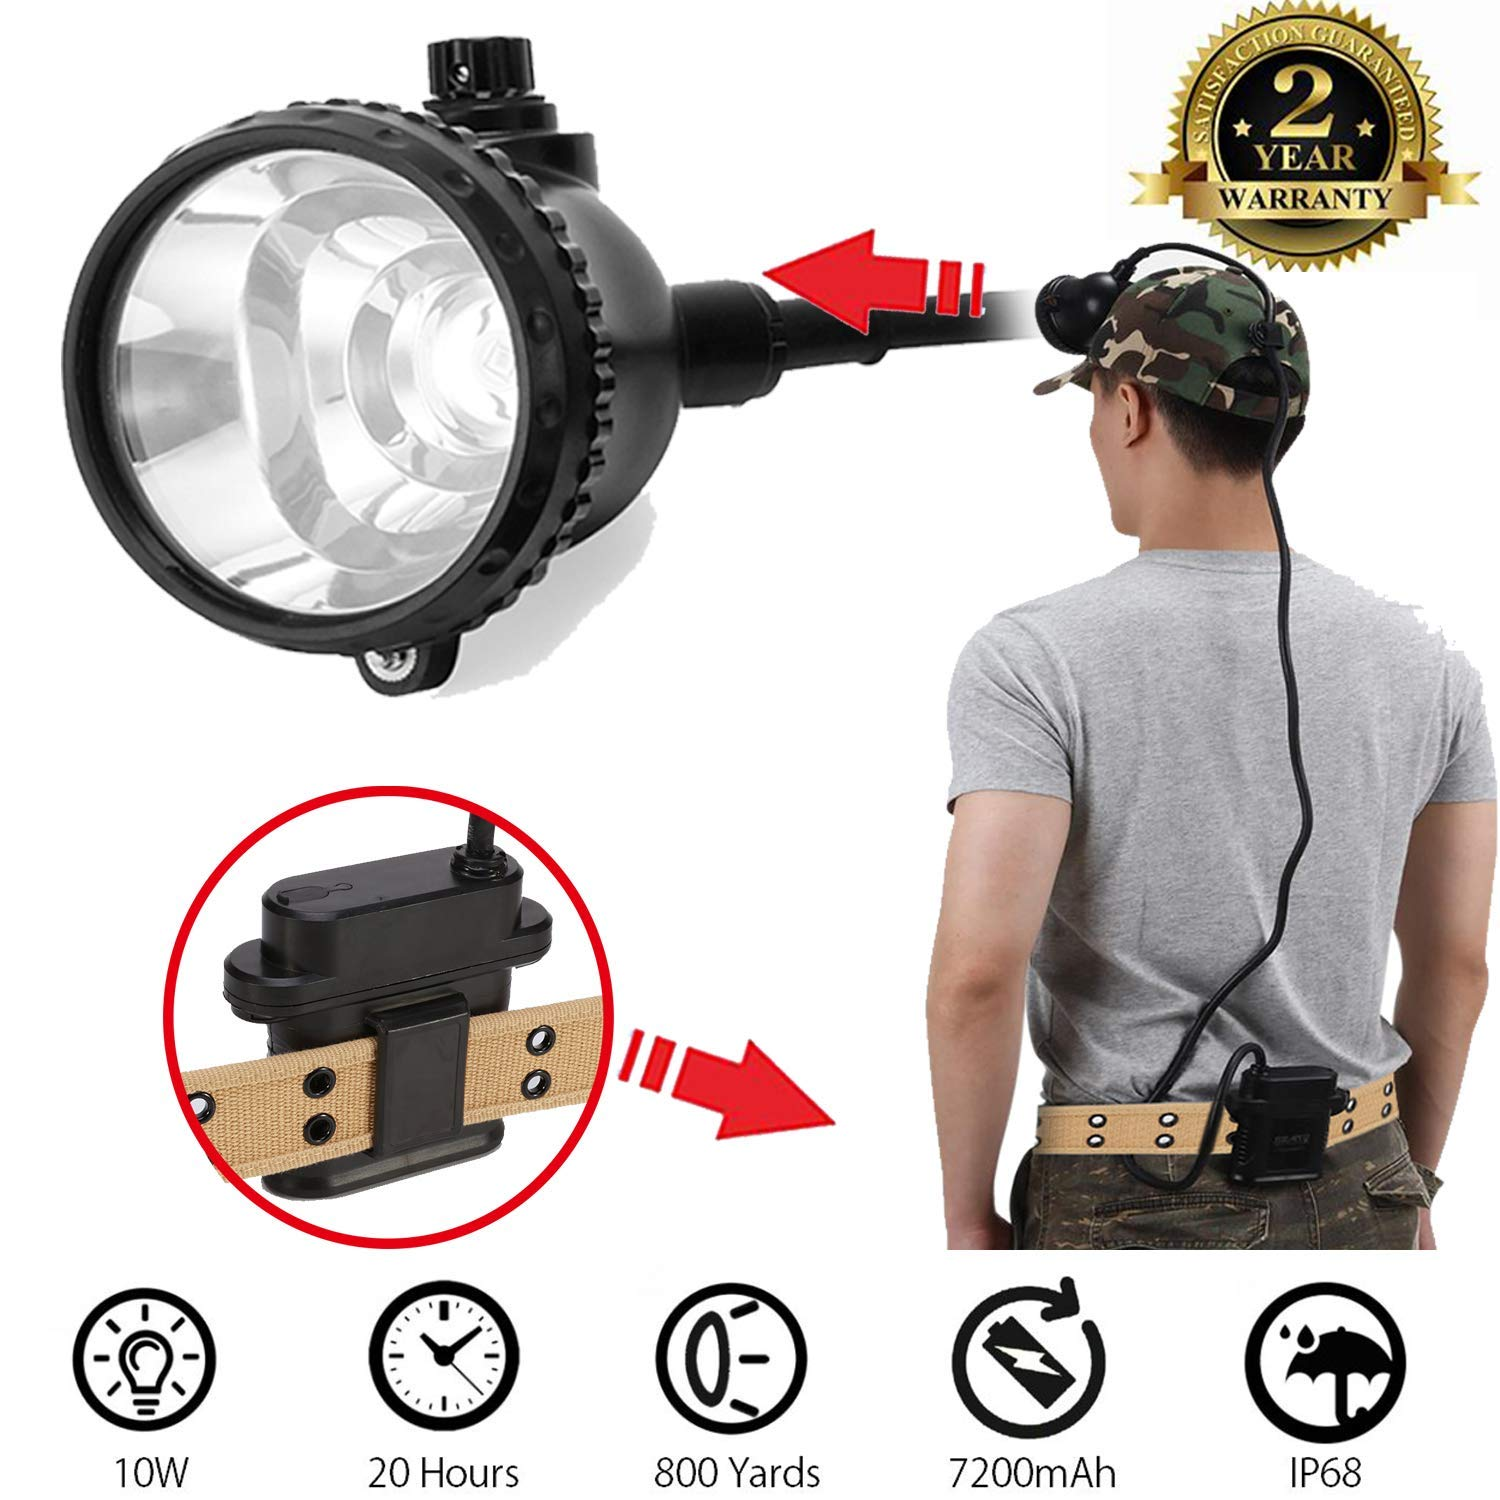 Safety Miner Headlamp Cap With 4 White Light Modes For Mining/Equipped Rechargeable Battery/Free Red&Green Len Filters For Coyote/Predator/Coon Hunting/Waterproof & Explosion Proof Headlight